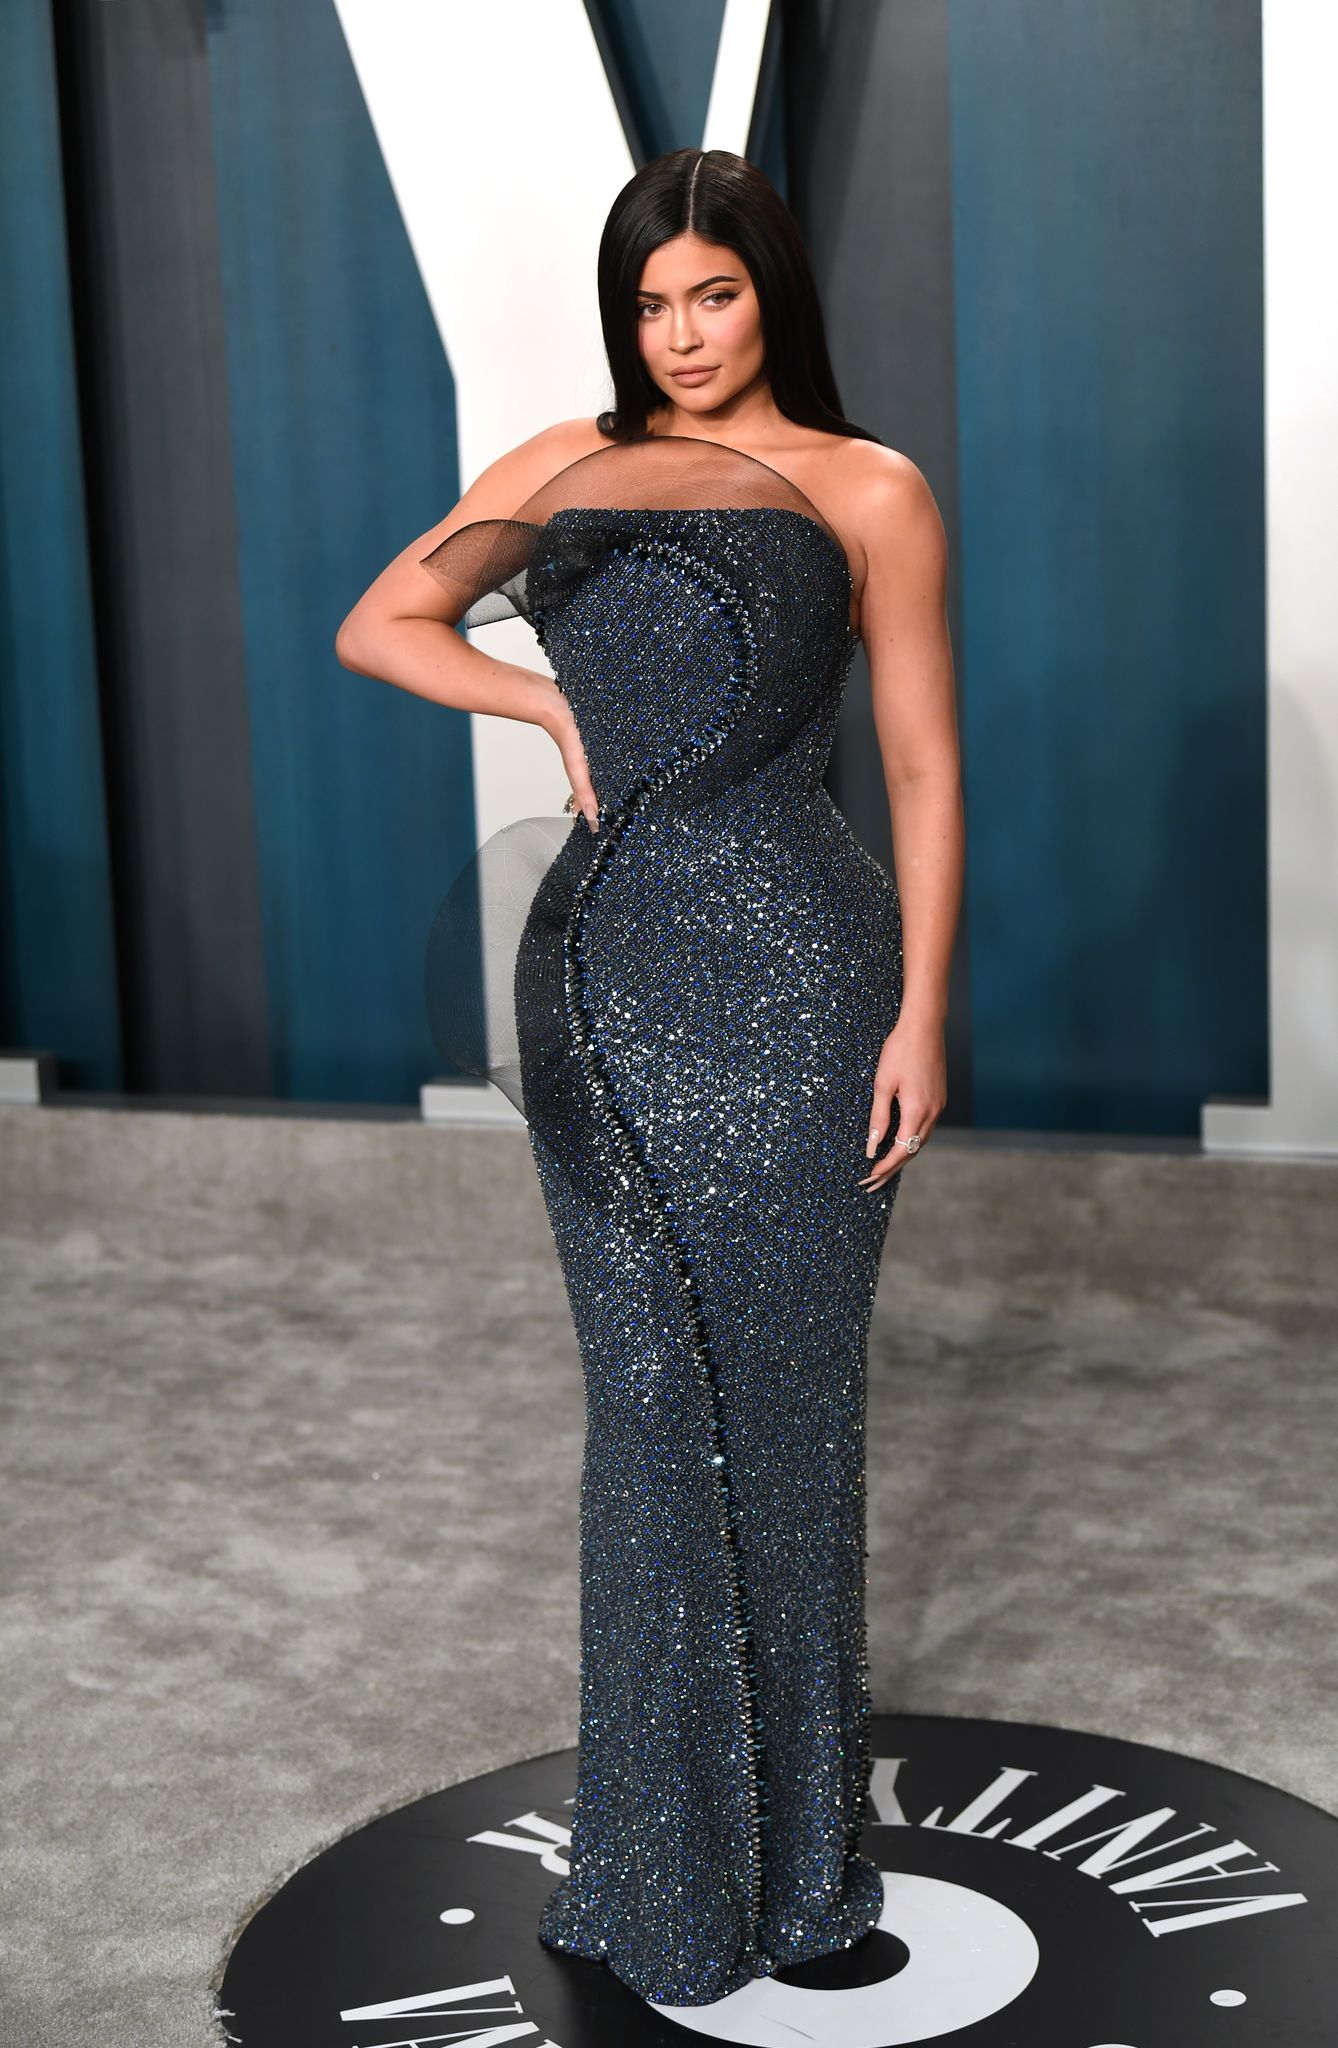 Kylie Jenner / Getty Images